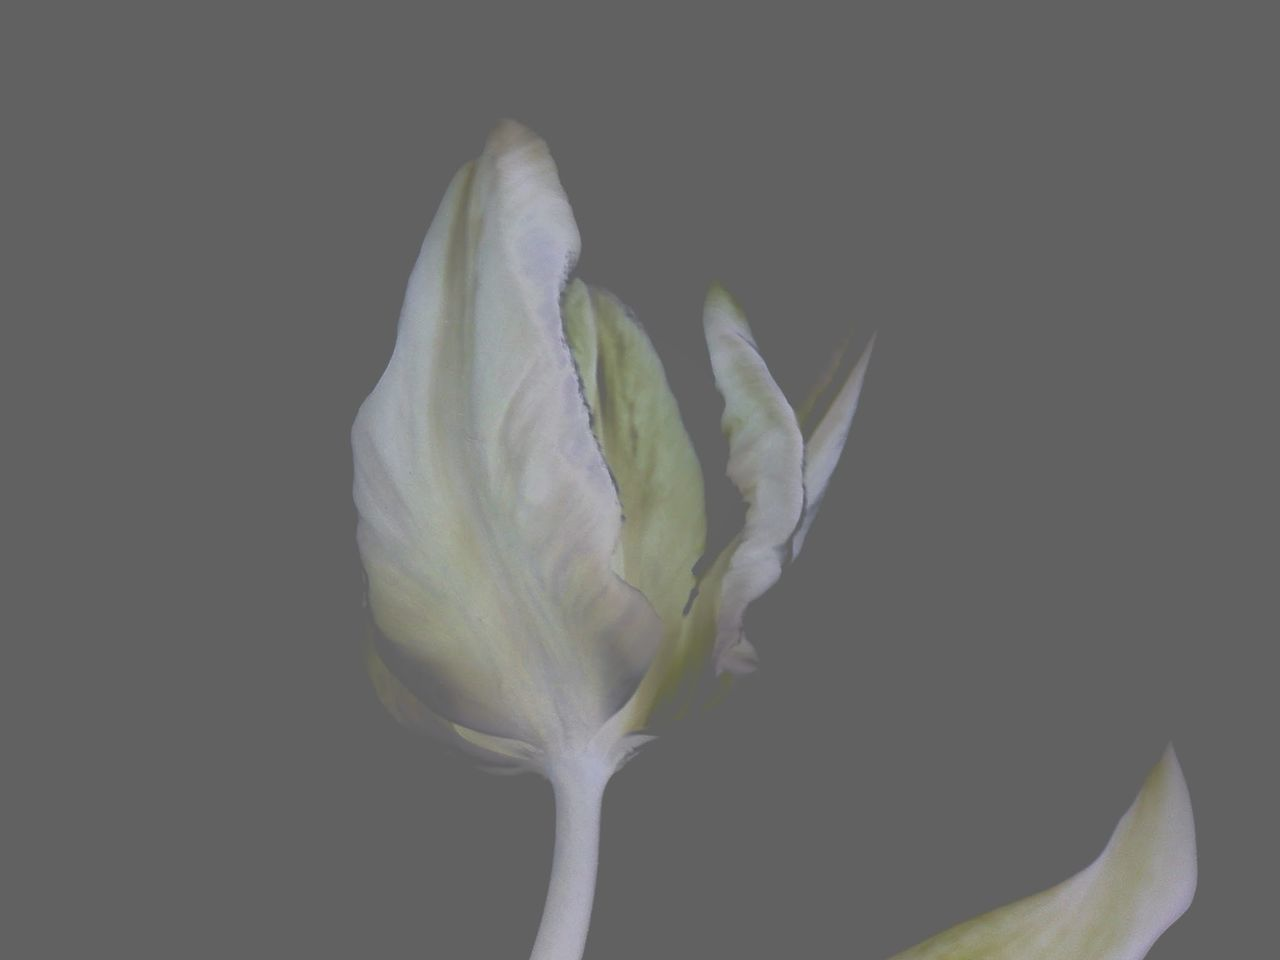 petal, flower, flower head, fragility, freshness, growth, studio shot, beauty in nature, plant, calla lily, close-up, nature, no people, leaf, black background, blooming, food, day, outdoors